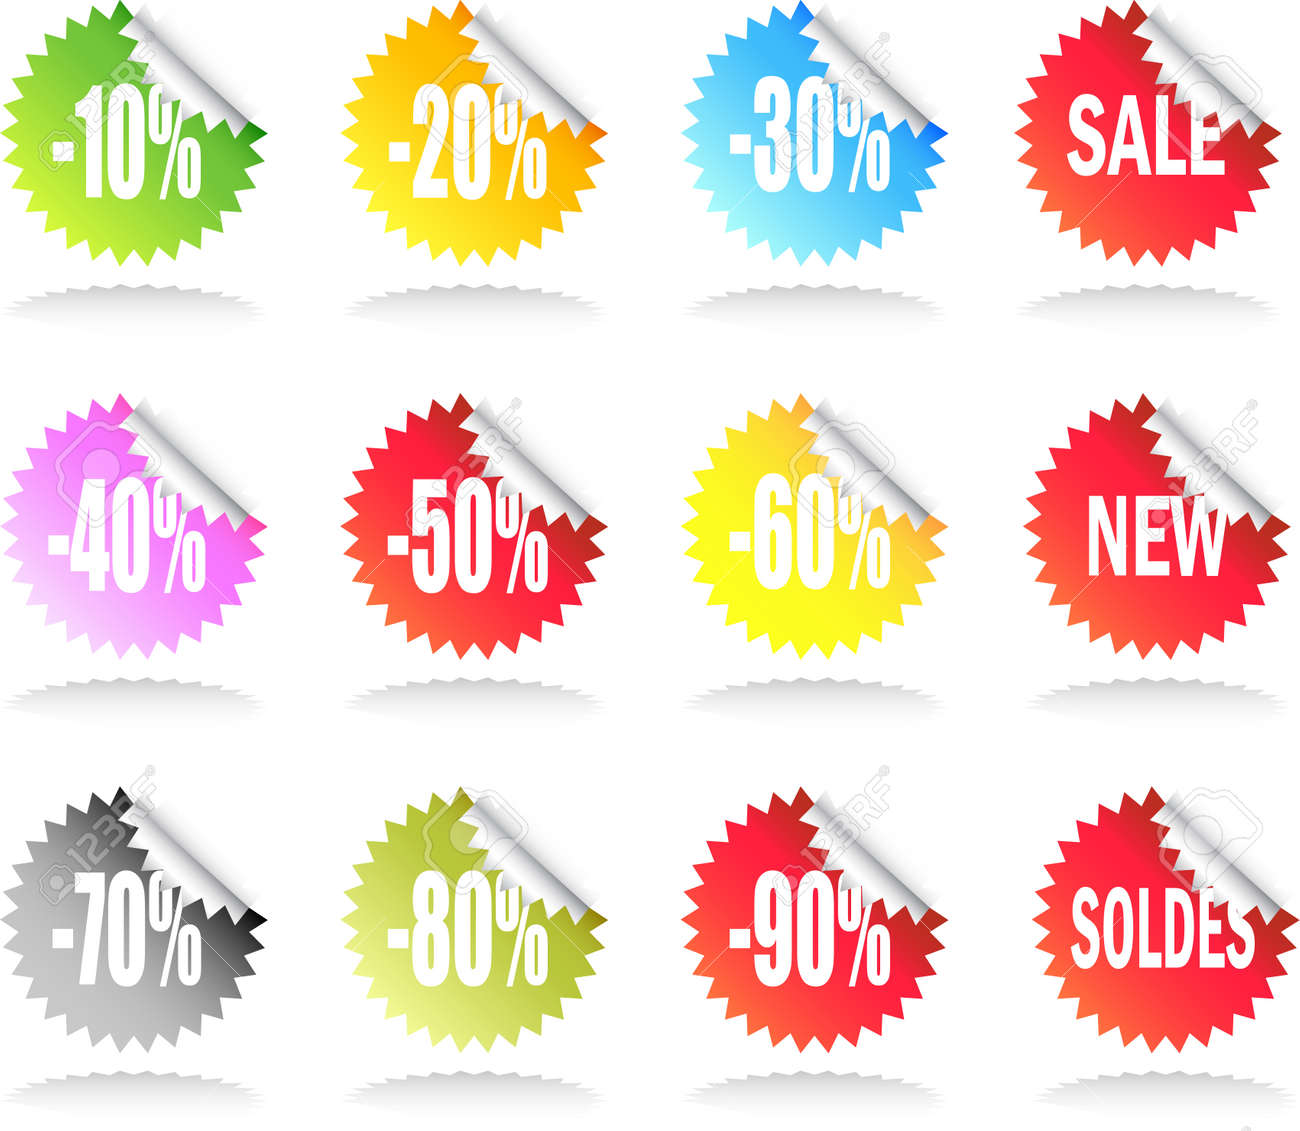 A Colourful Set of Sale Stickers Stock Vector - 4120691